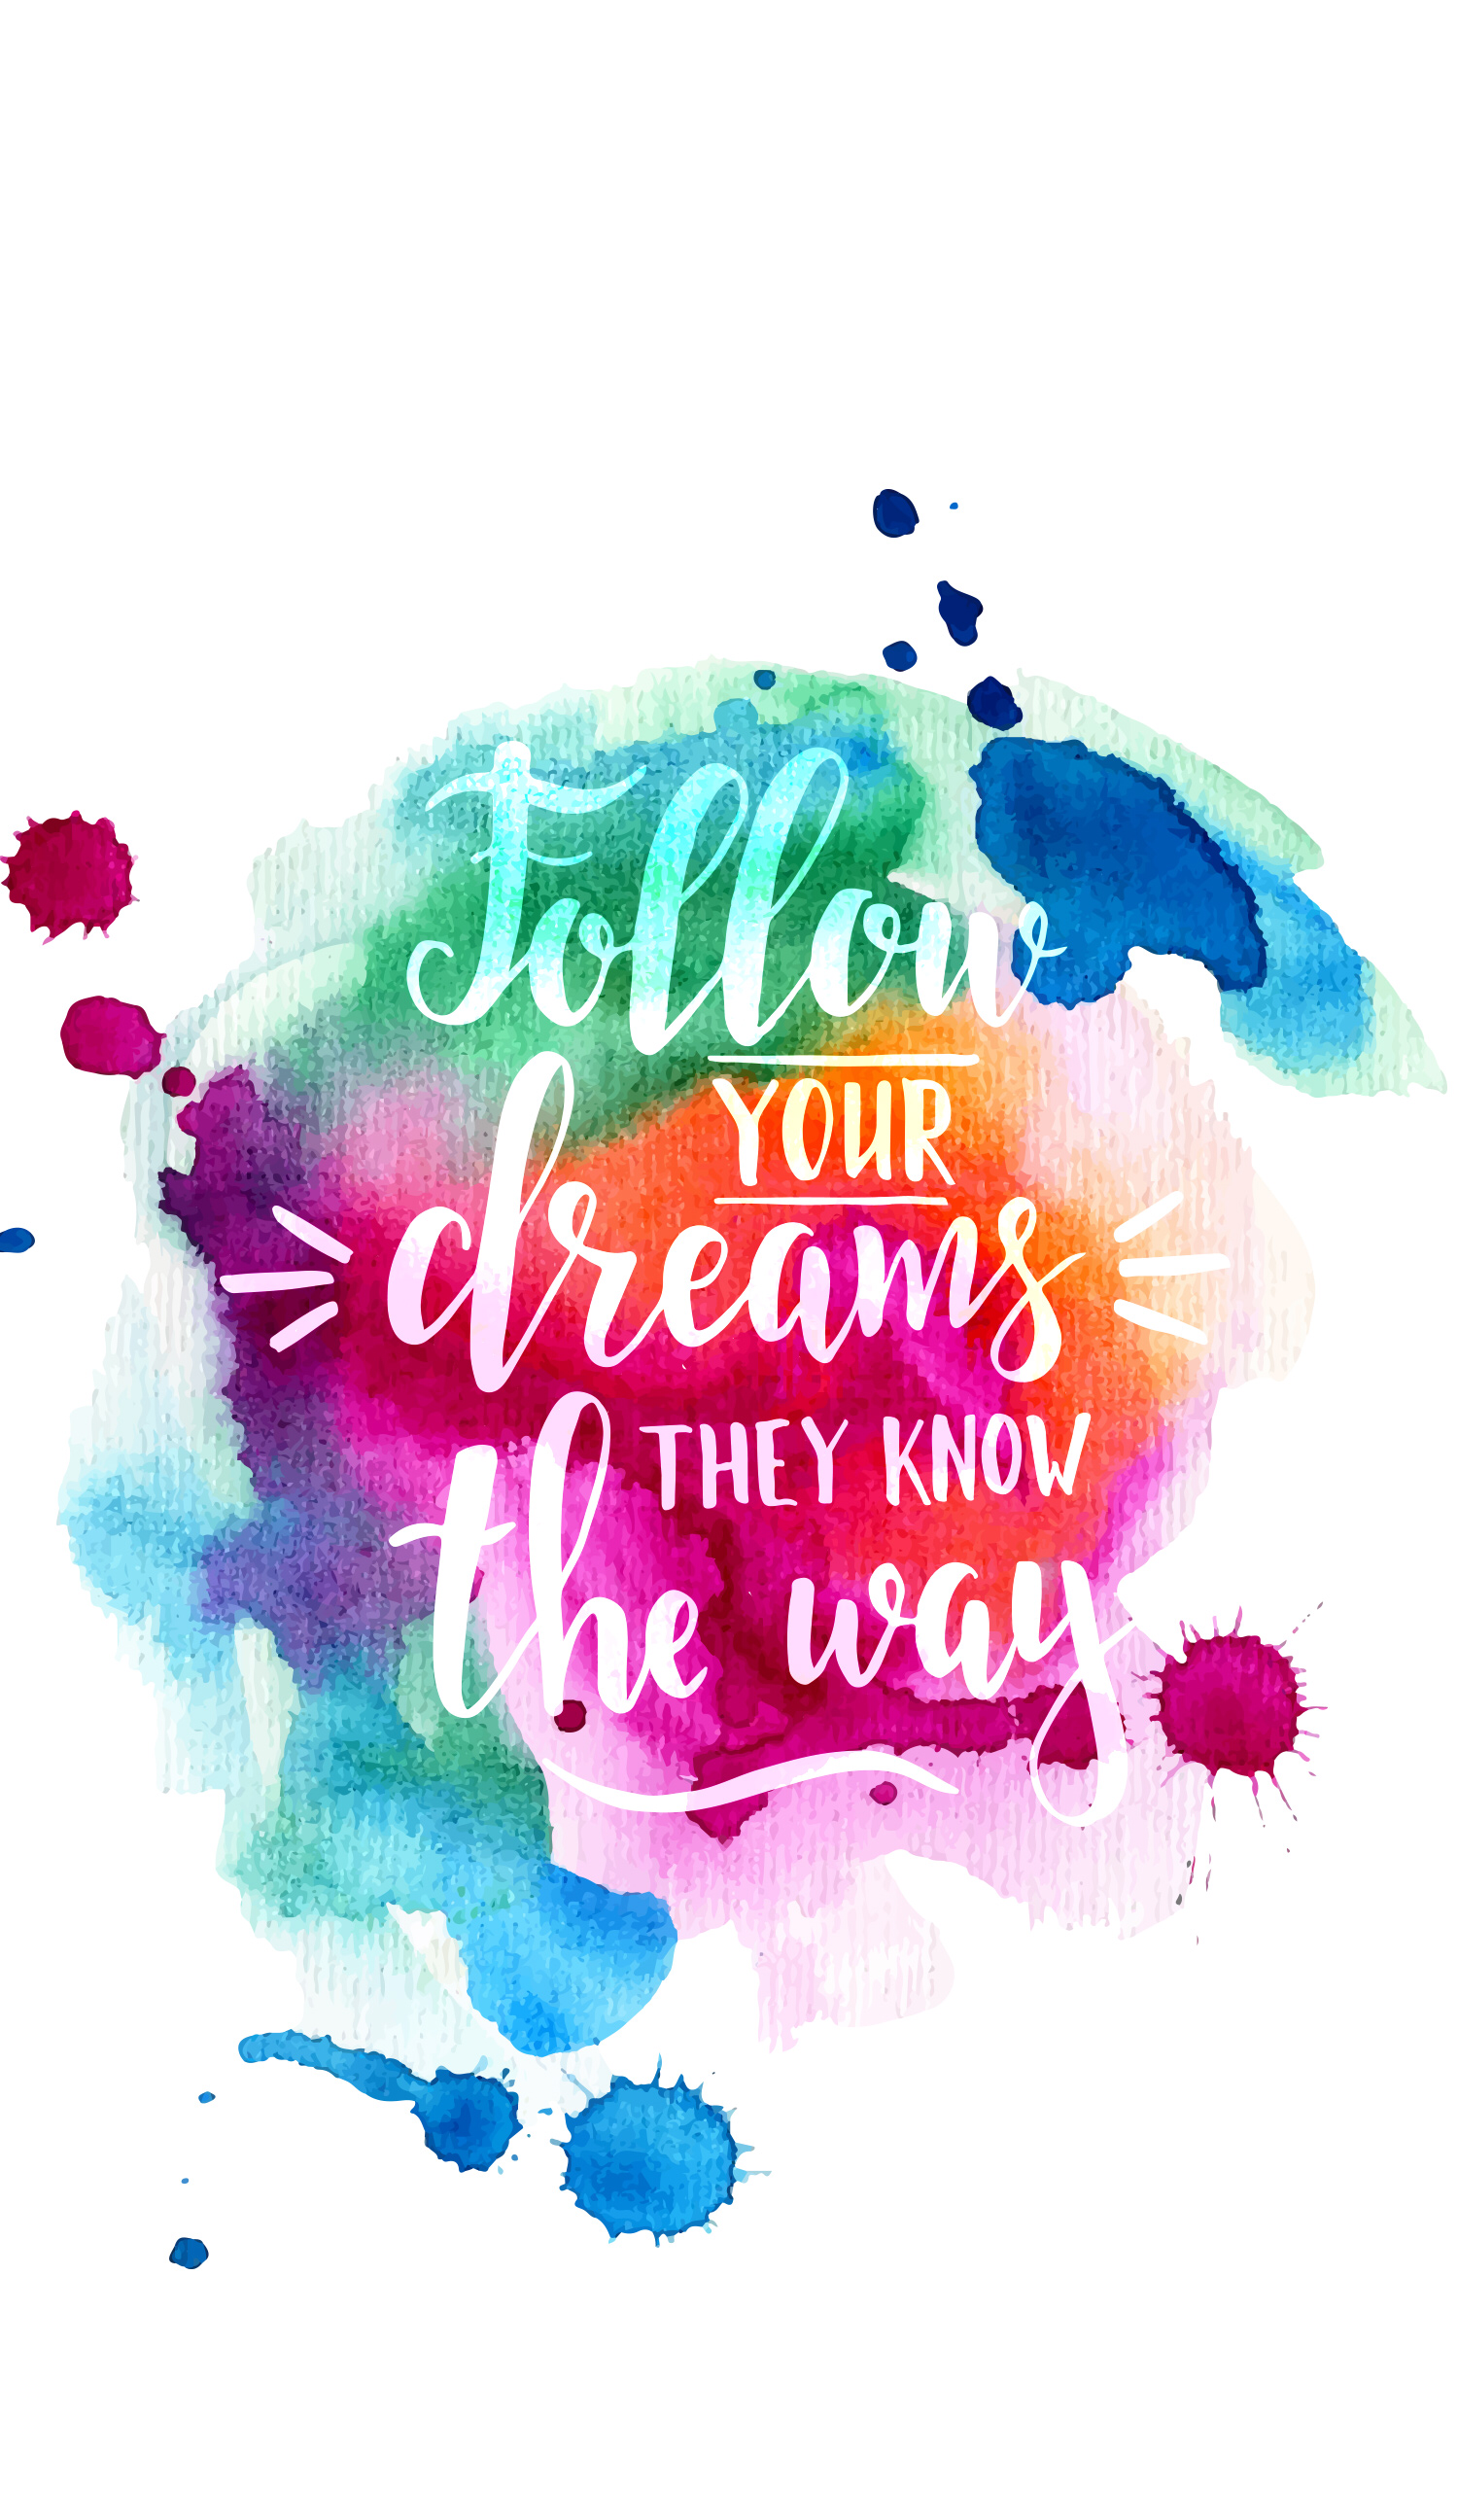 Follow Your Dreams They Know The Way Frases Motivadoras Frases